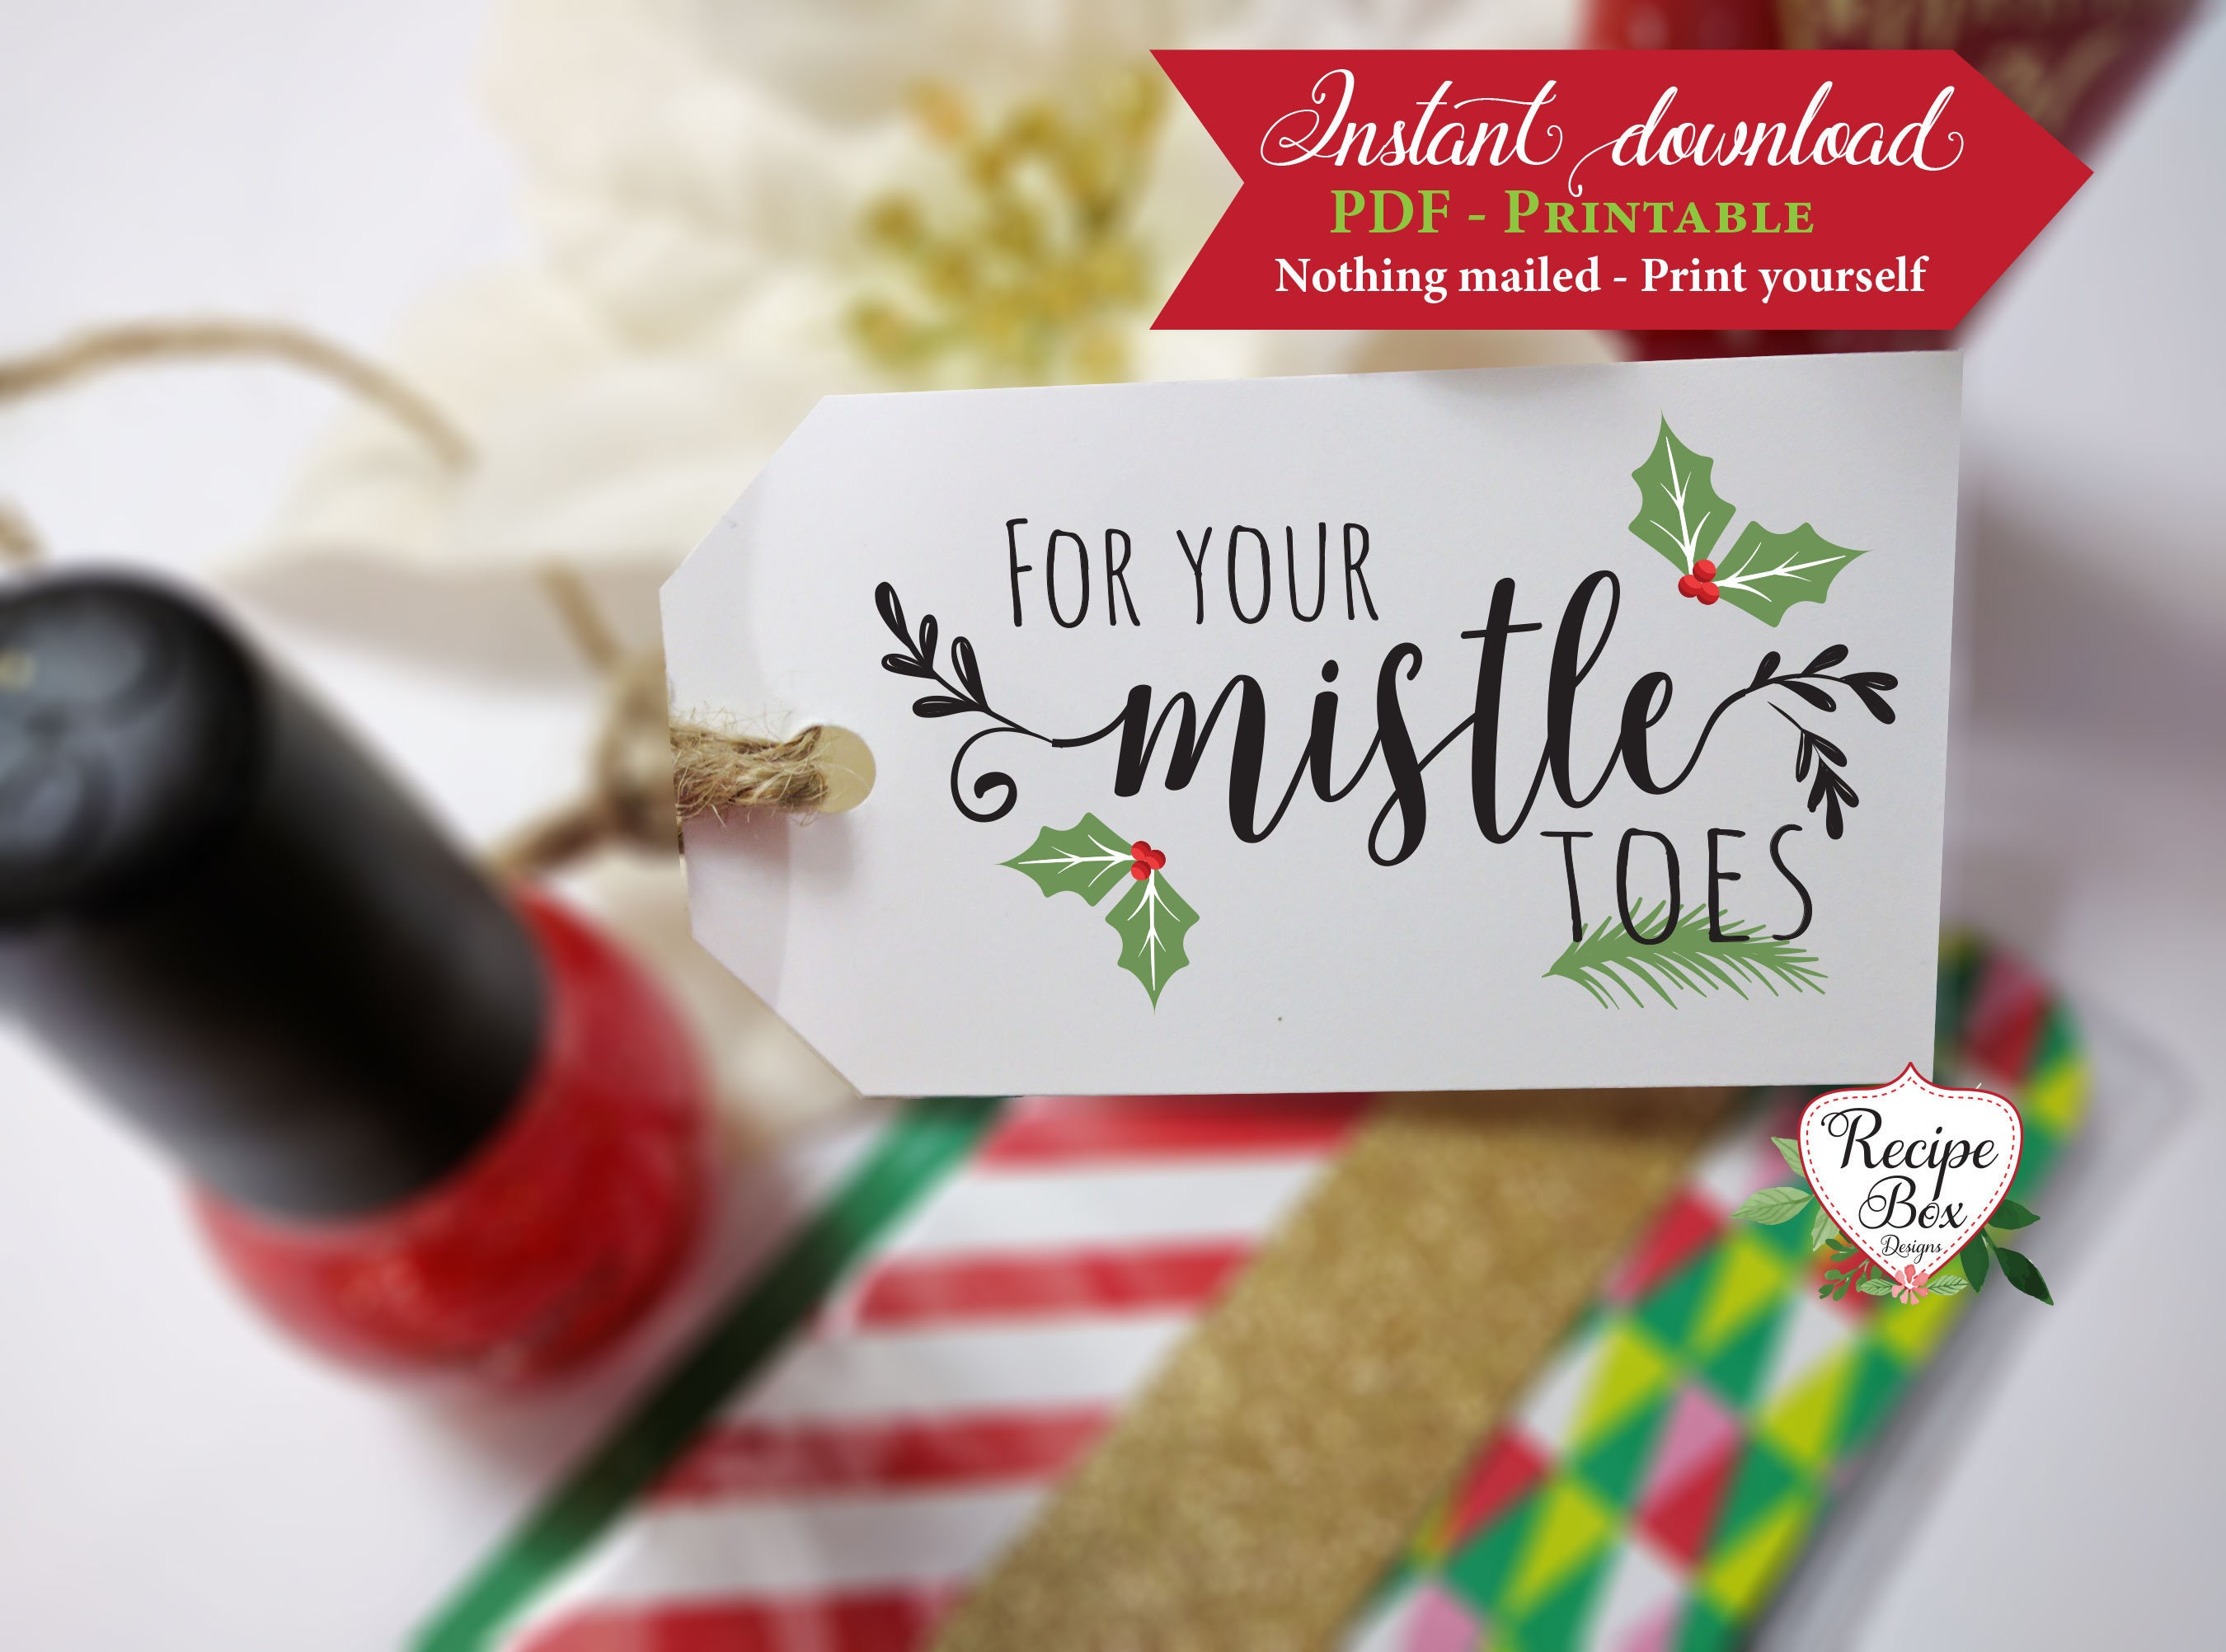 photograph about For Your Mistletoes Printable referred to as Xmas Tags Printable, For your mistletoes printable nail